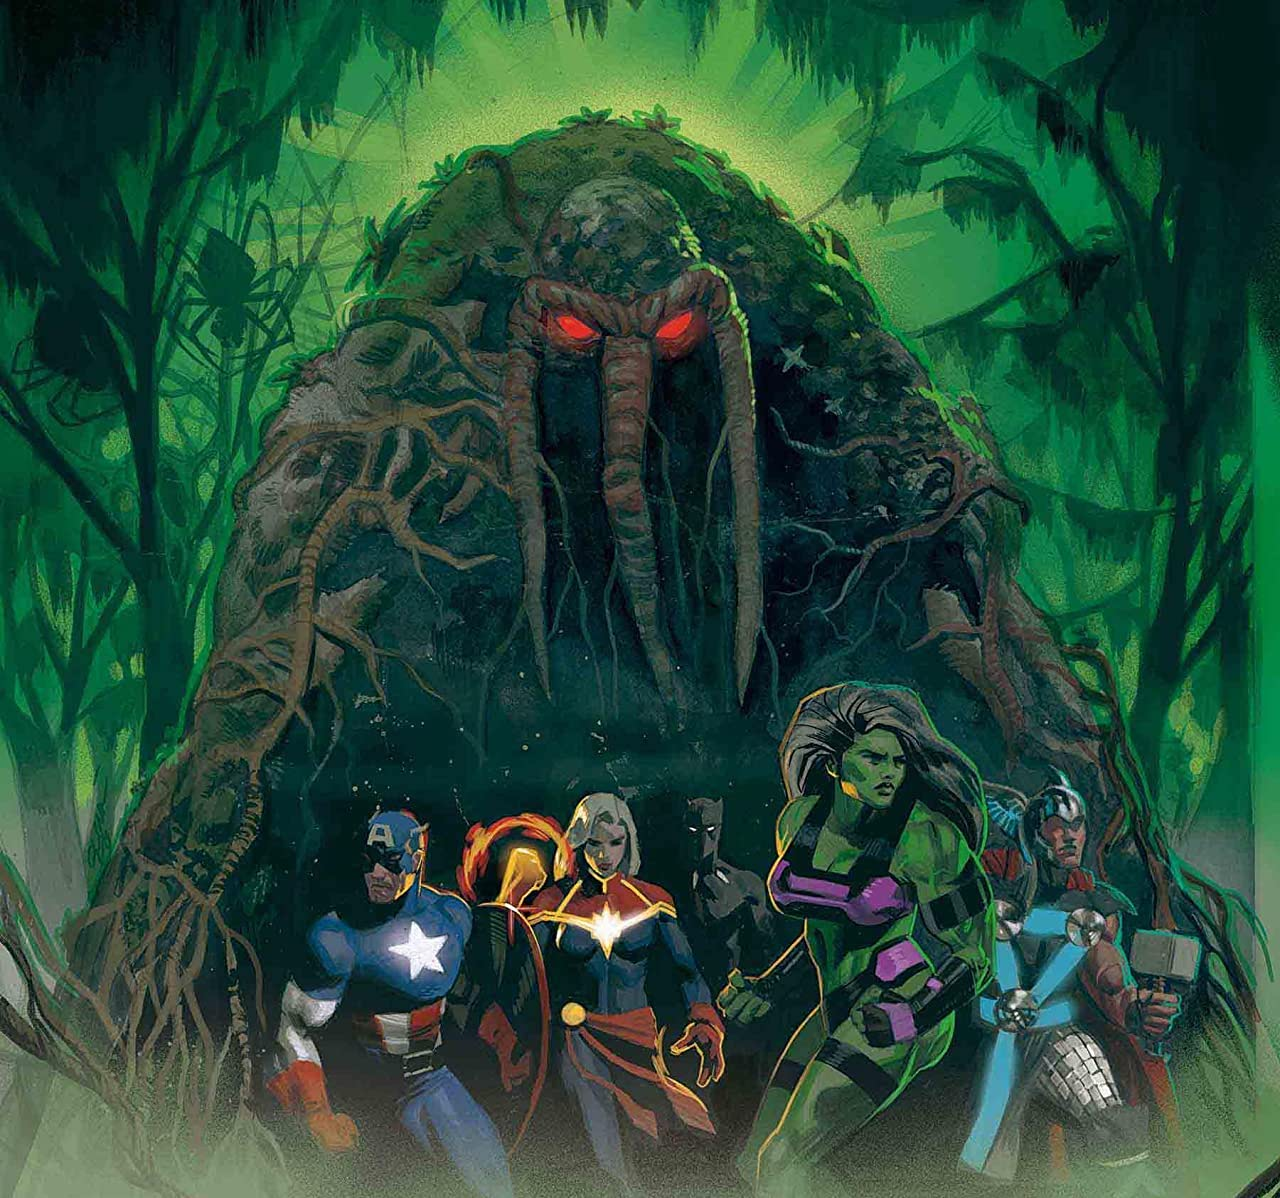 'Avengers: Curse of the Man-Thing' #1 is an event-caliber thrill ride